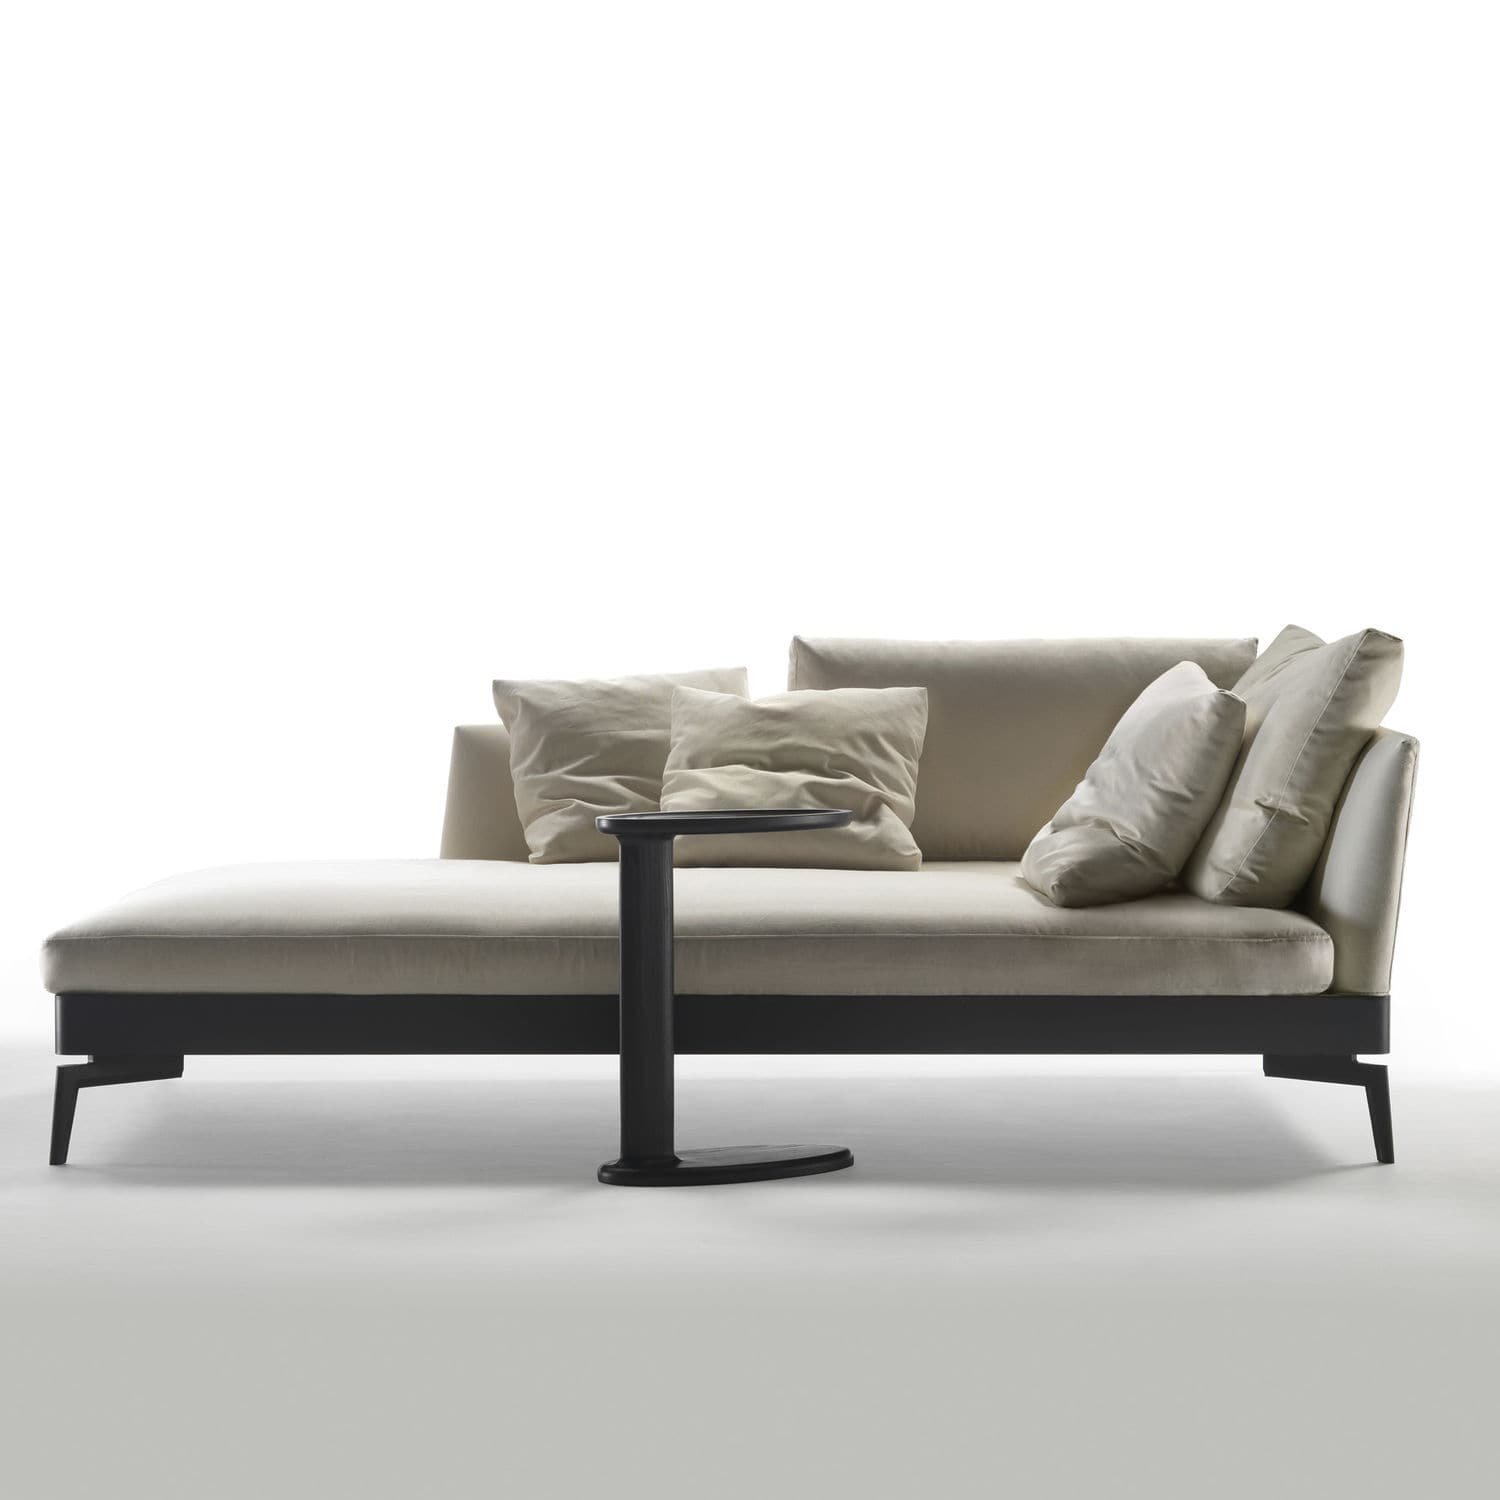 contemporary daybed  fabric  leather  indoor  feel good  feel  -  contemporary daybed  fabric  leather  indoor feel good  feel goodten flexform